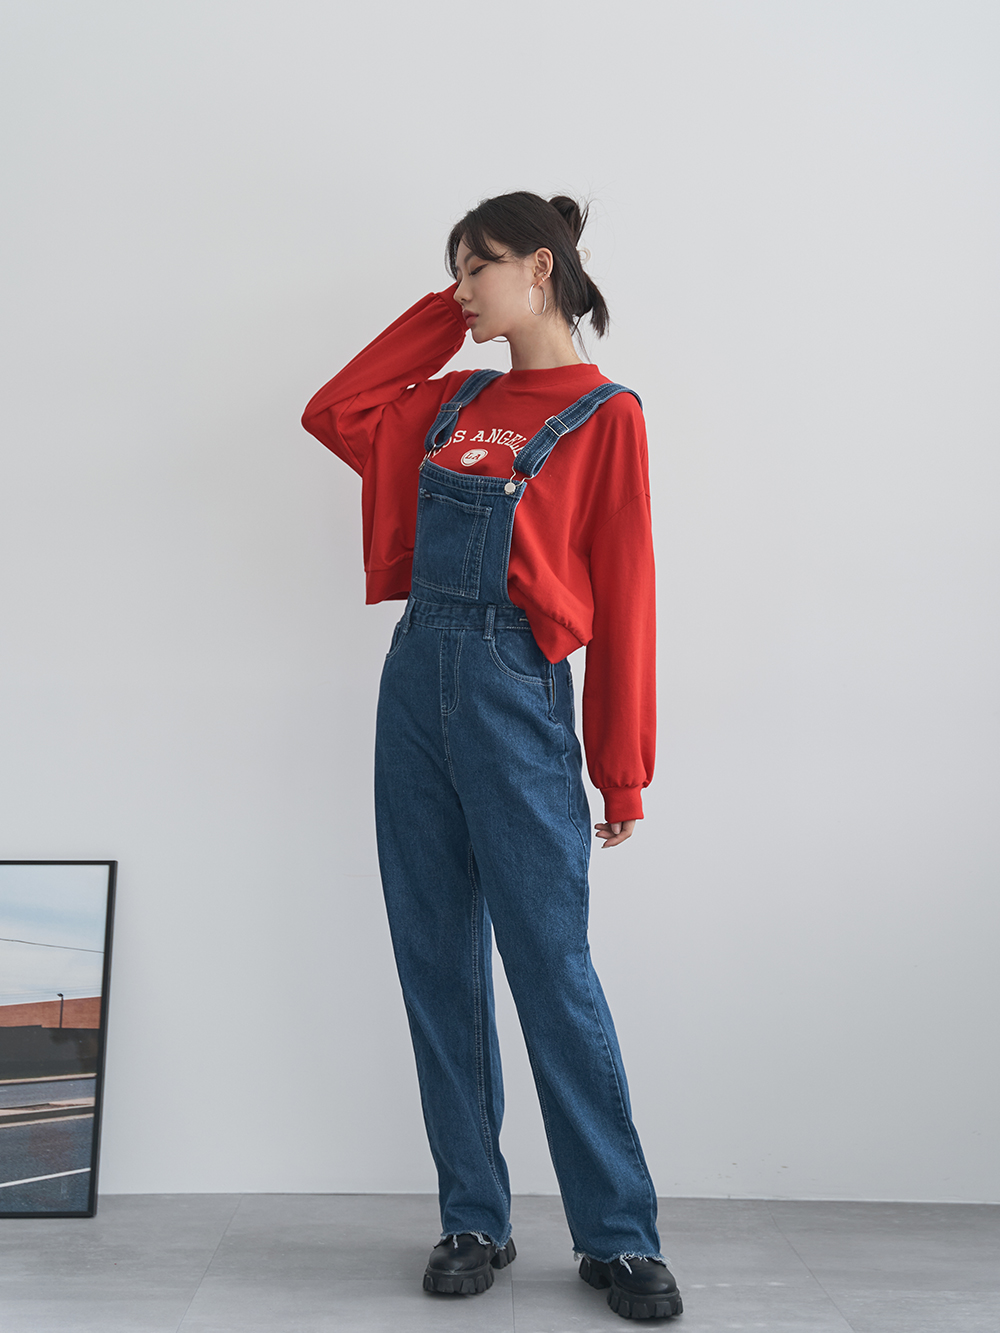 Overalls denim trousers with suspenders